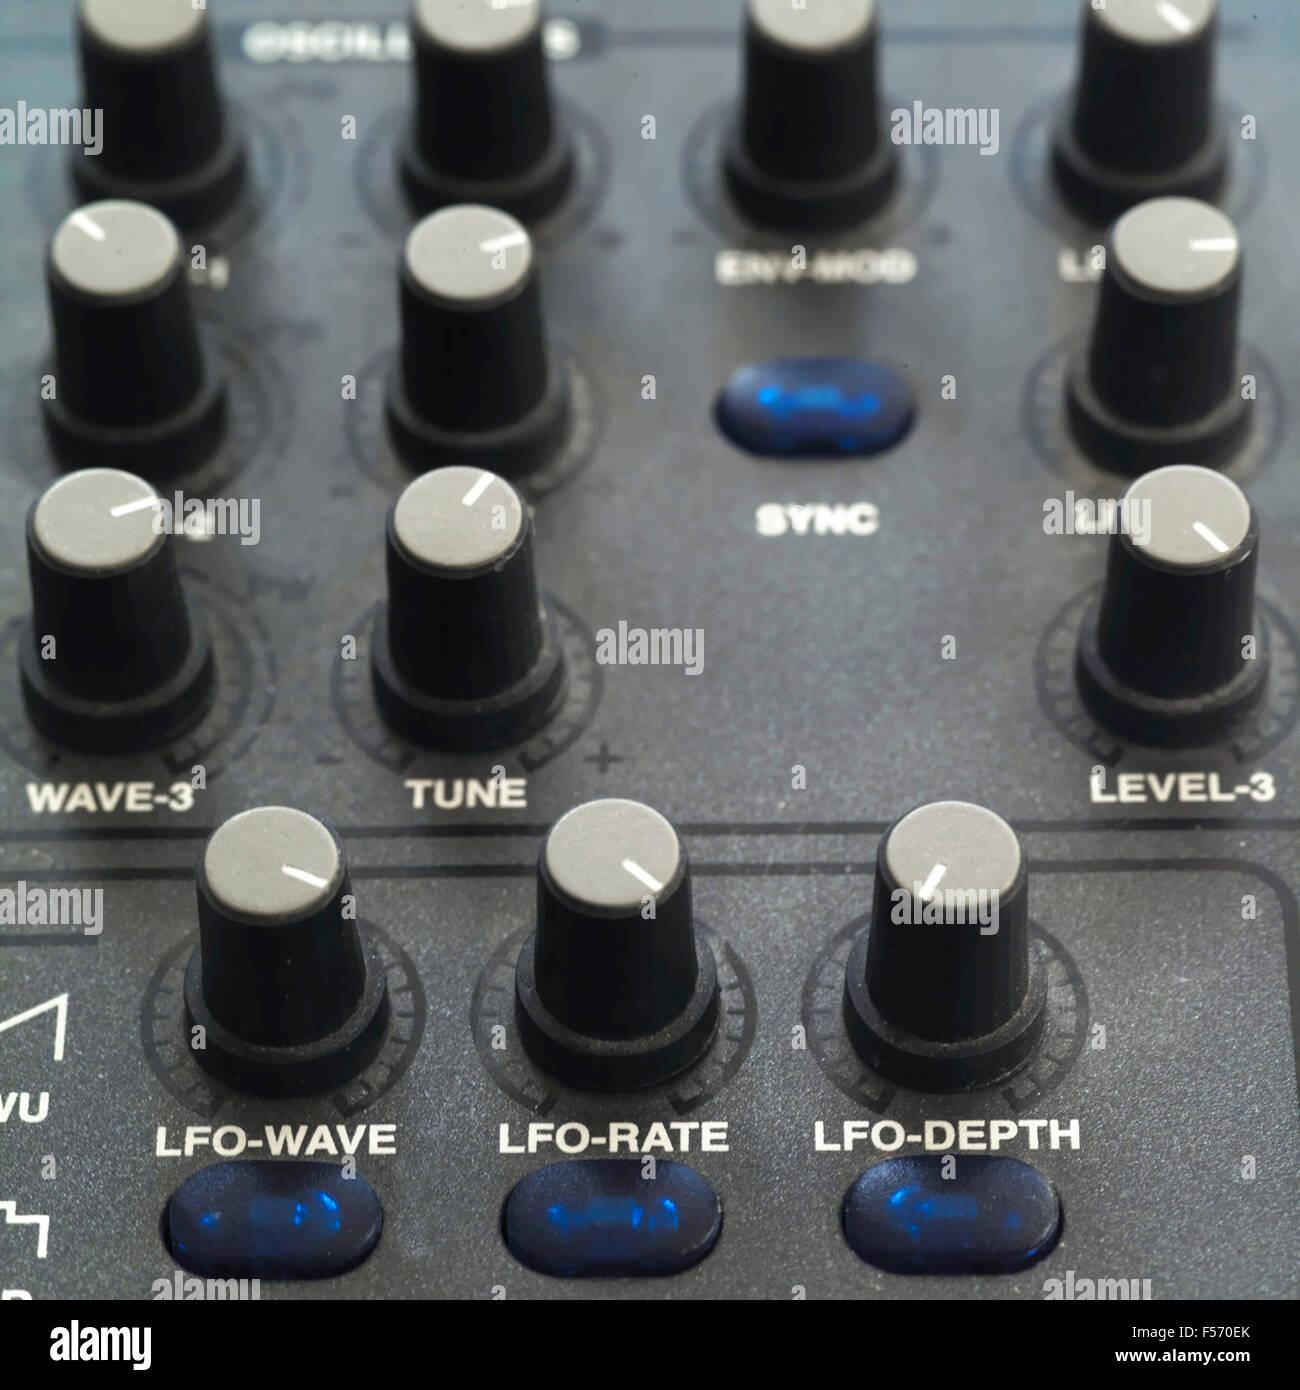 Rows of encoders on a synthesizer - Stock Image